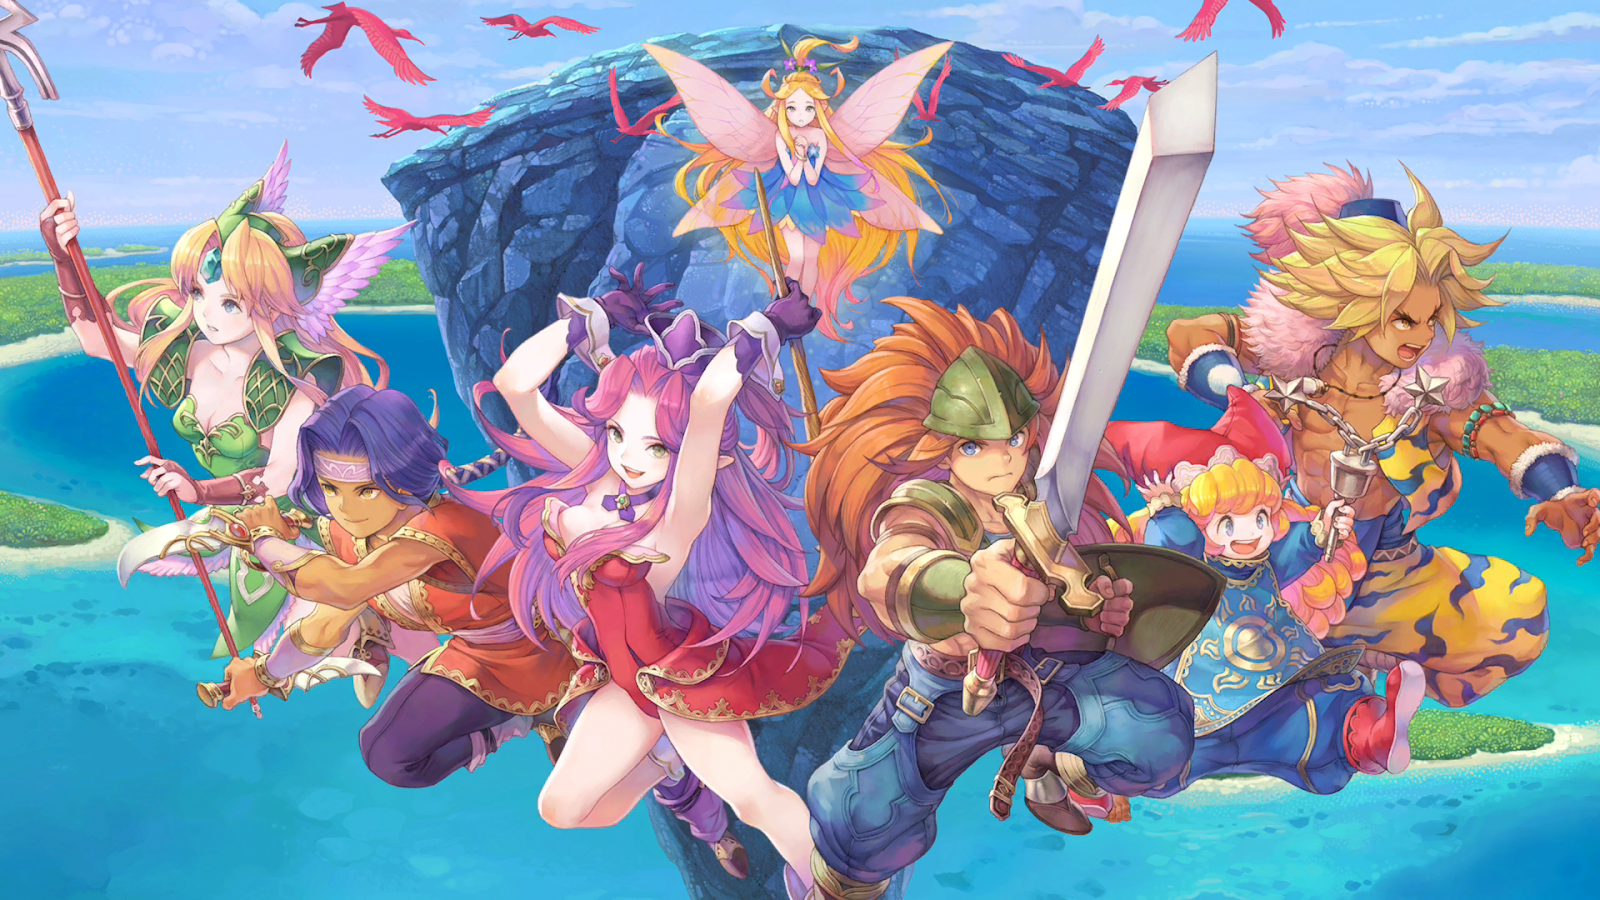 The Trials Of Mana Remake Proves Square Enix Can Faithfully Redo A Classic '90s RPG